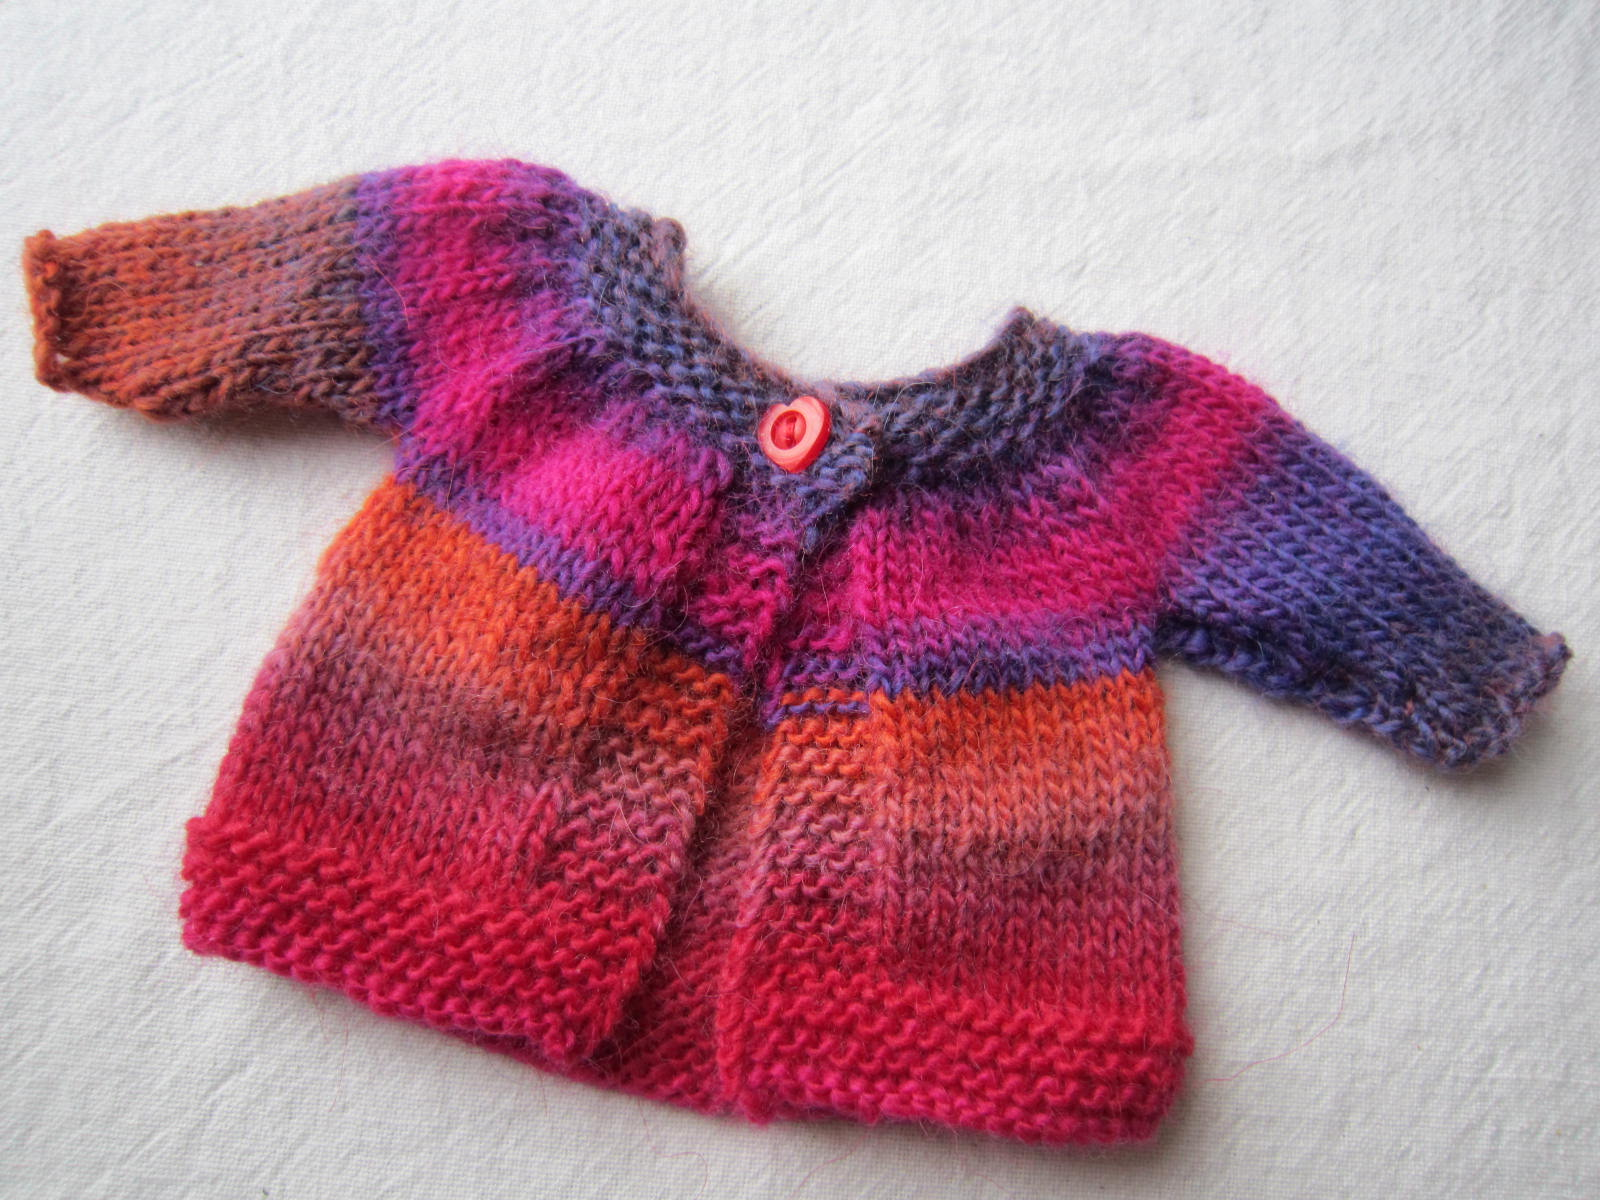 Knitting Decrease Stitch At End Of Row : SNOOPYDOGKNITS!: SMALL THINGS....